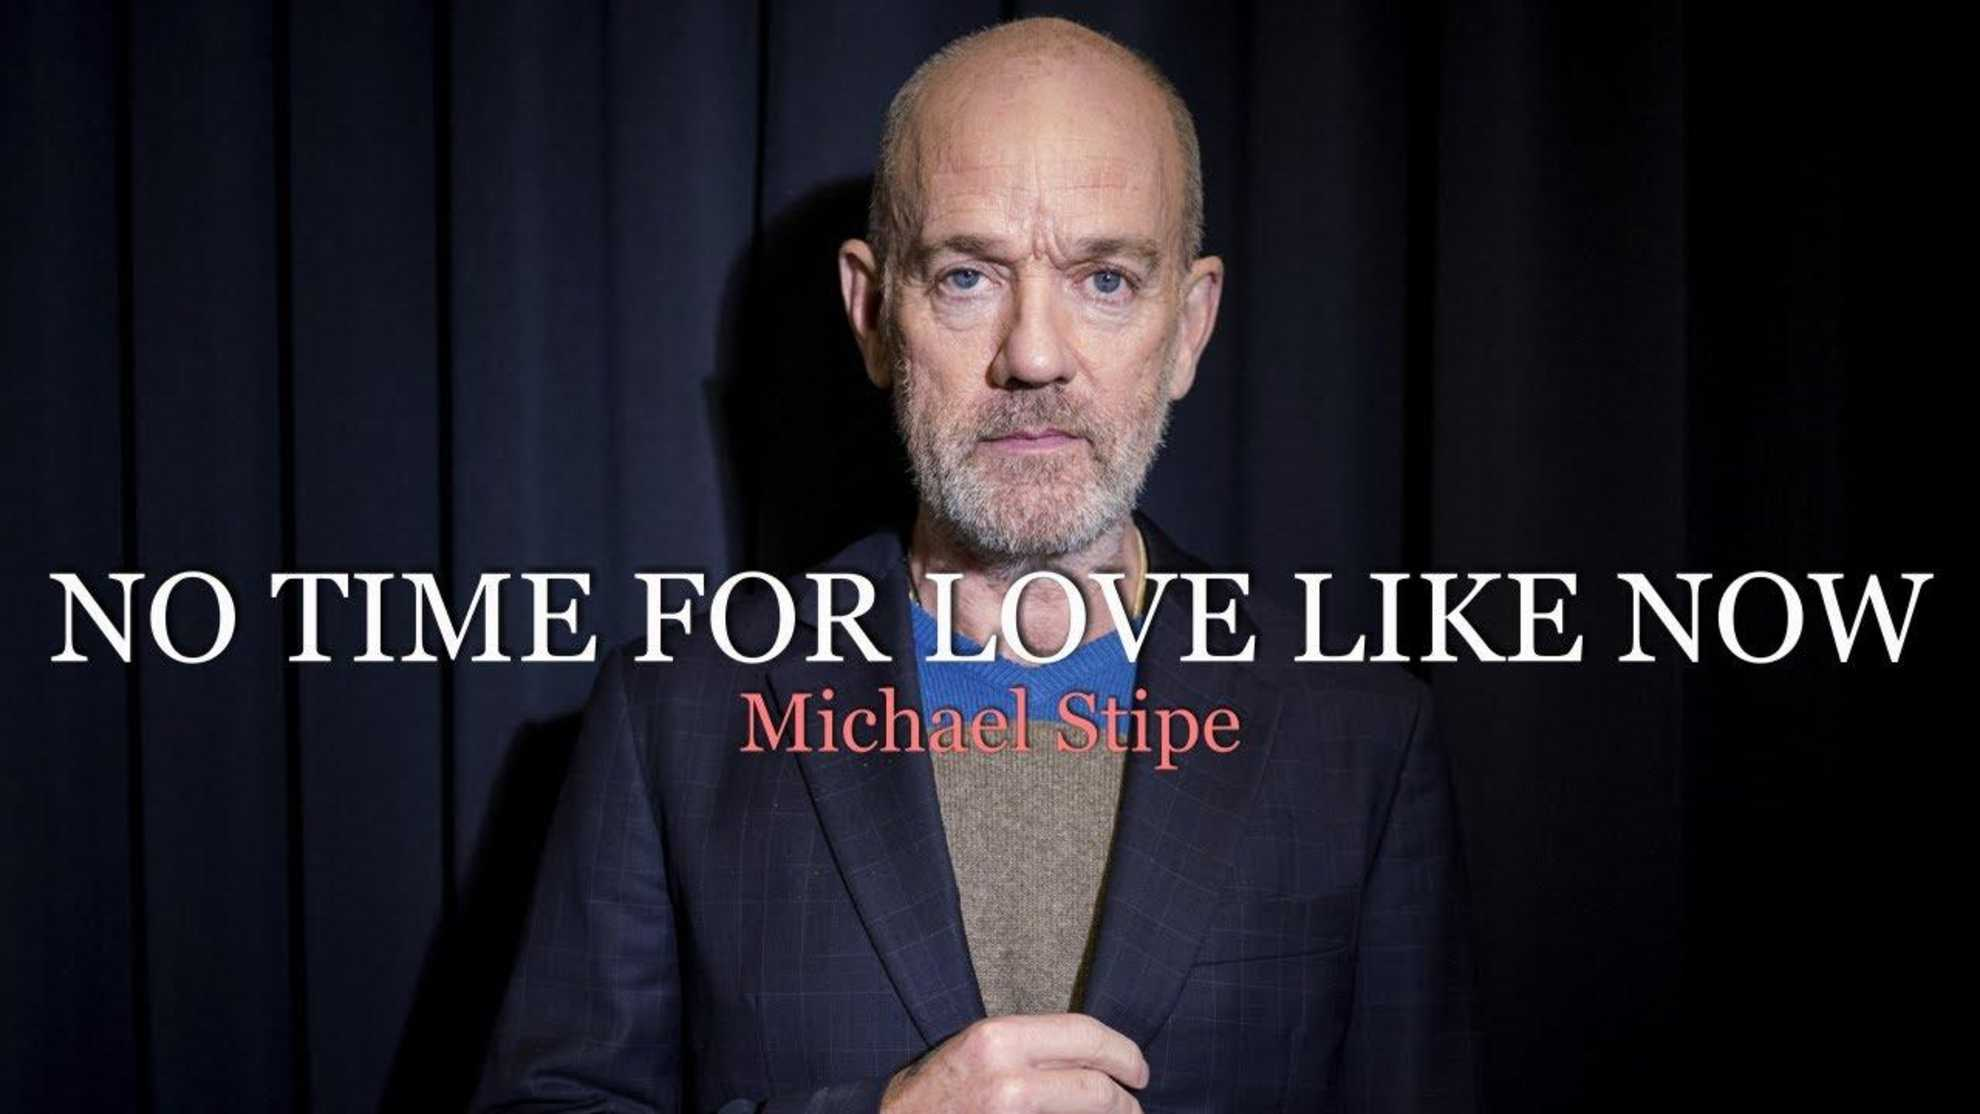 michael stipe no time for love like now